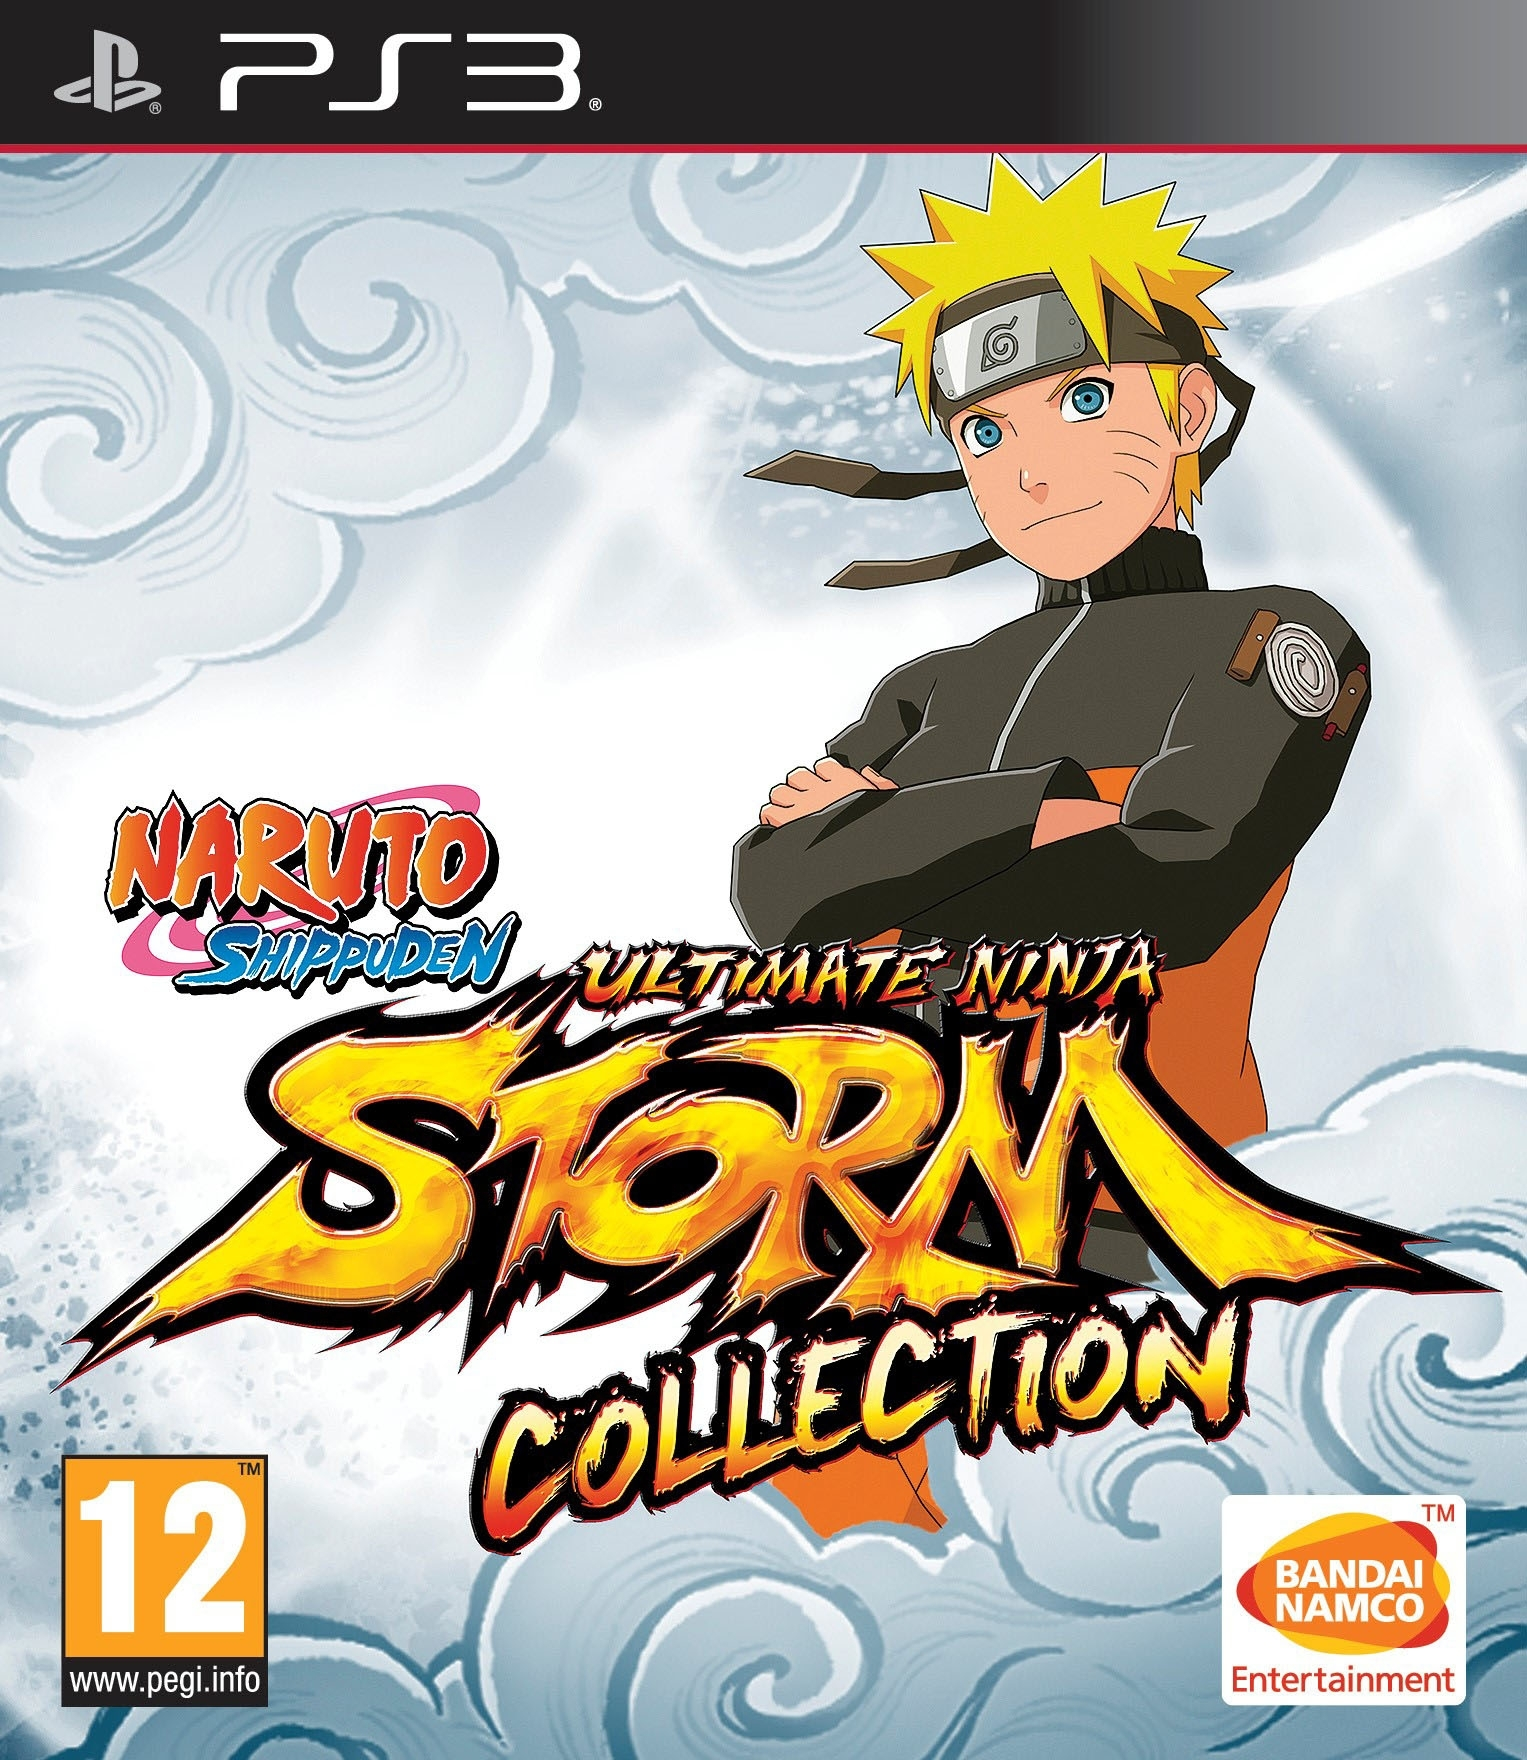 Naruto Shippuden Ultimate Ninja Storm Collection (PS3)